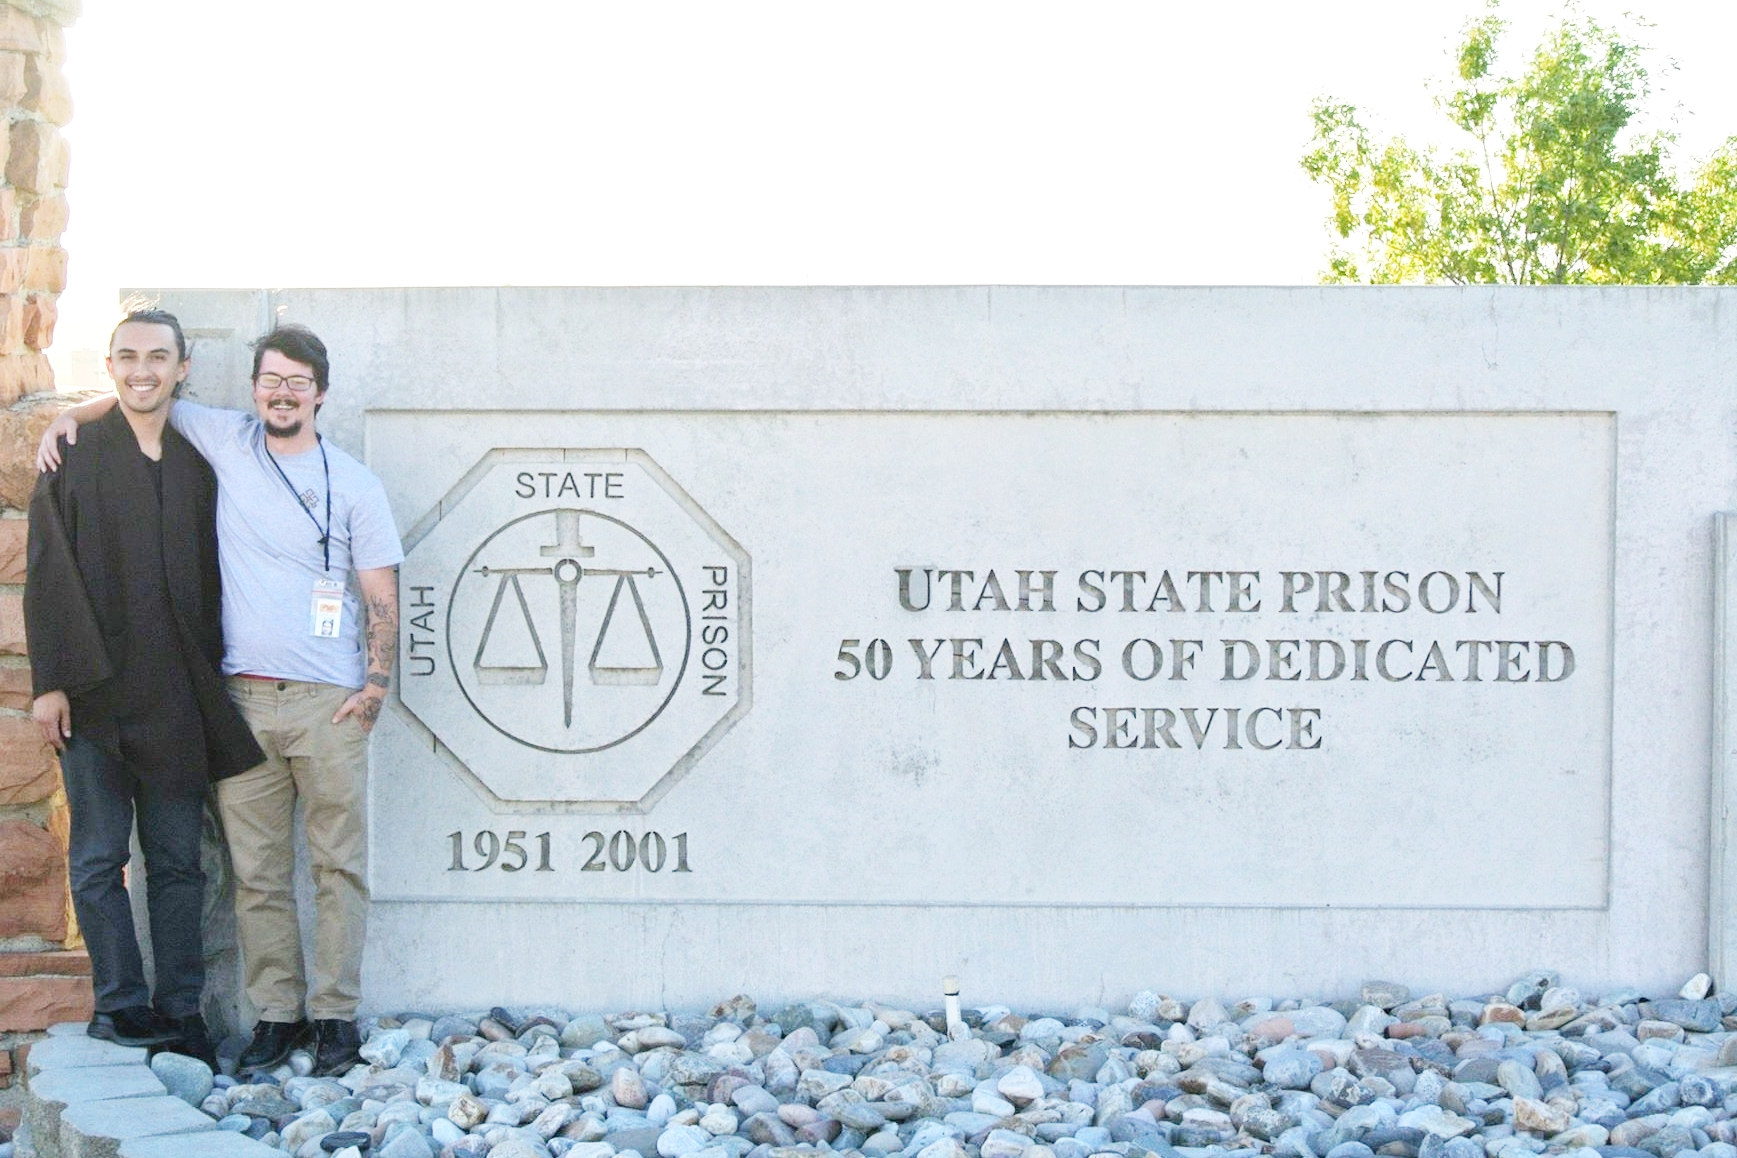 Utah State Prison Dharma Project - Wake Up Salt Lake City brought mindfulness into the Utah State Prison and transmitted the Five Mindfulness Trainings to four inmates.